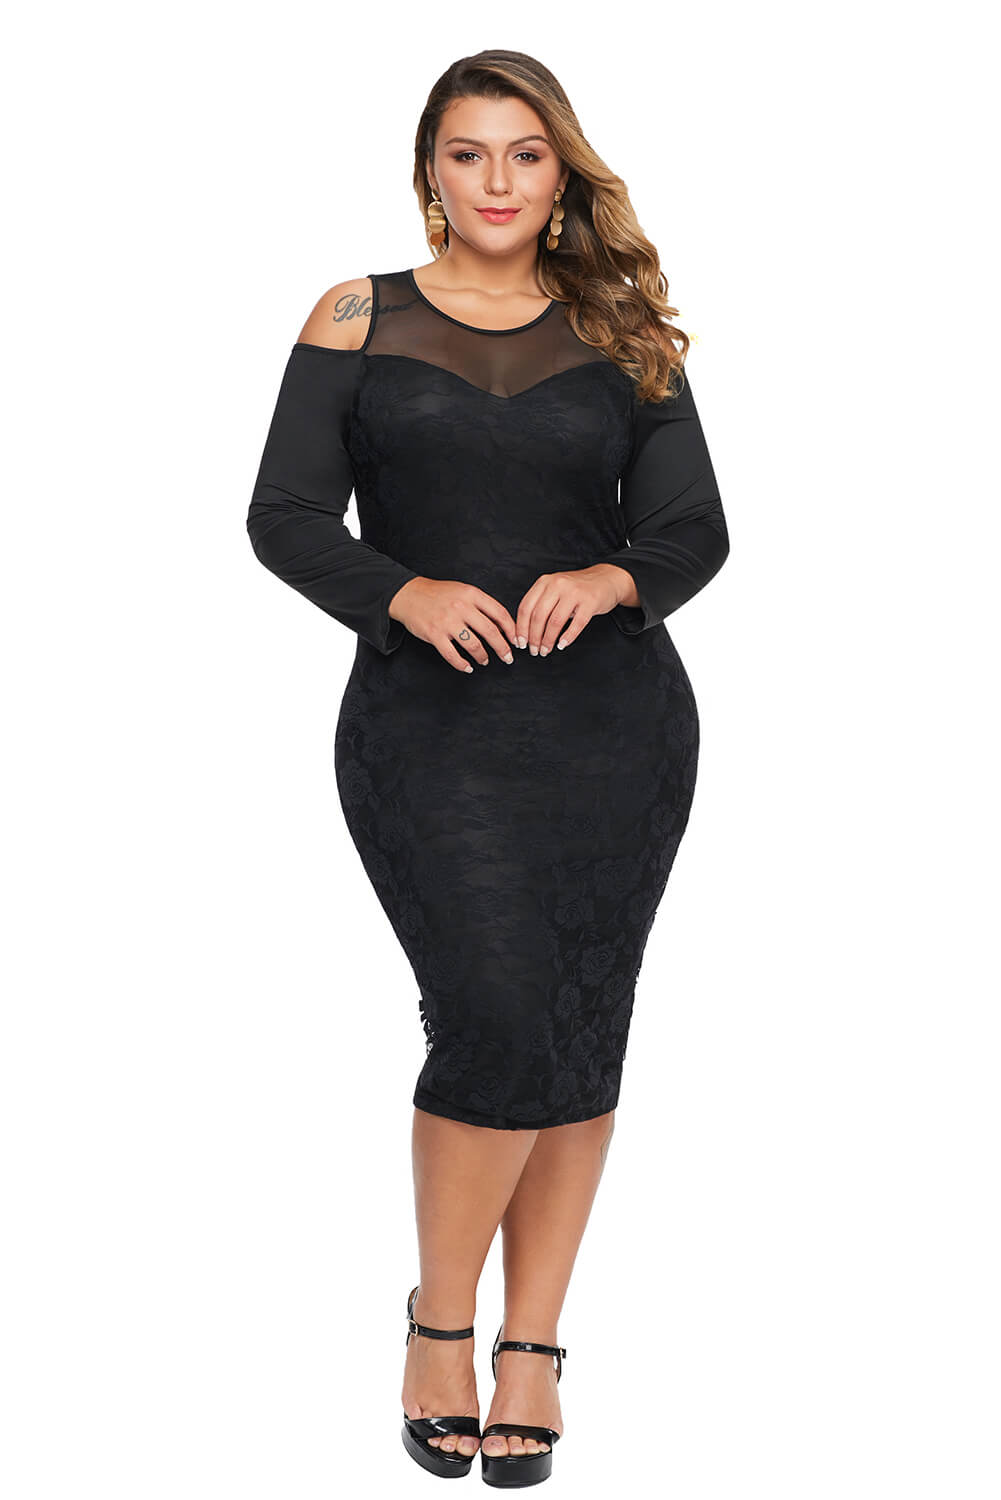 Adogirl White Cold Shoulder Mesh Yoke Plus Size Dress XL-5XL 2019 Autumn New Women Long Sleeve Bodycon Midi Party Lace Dress